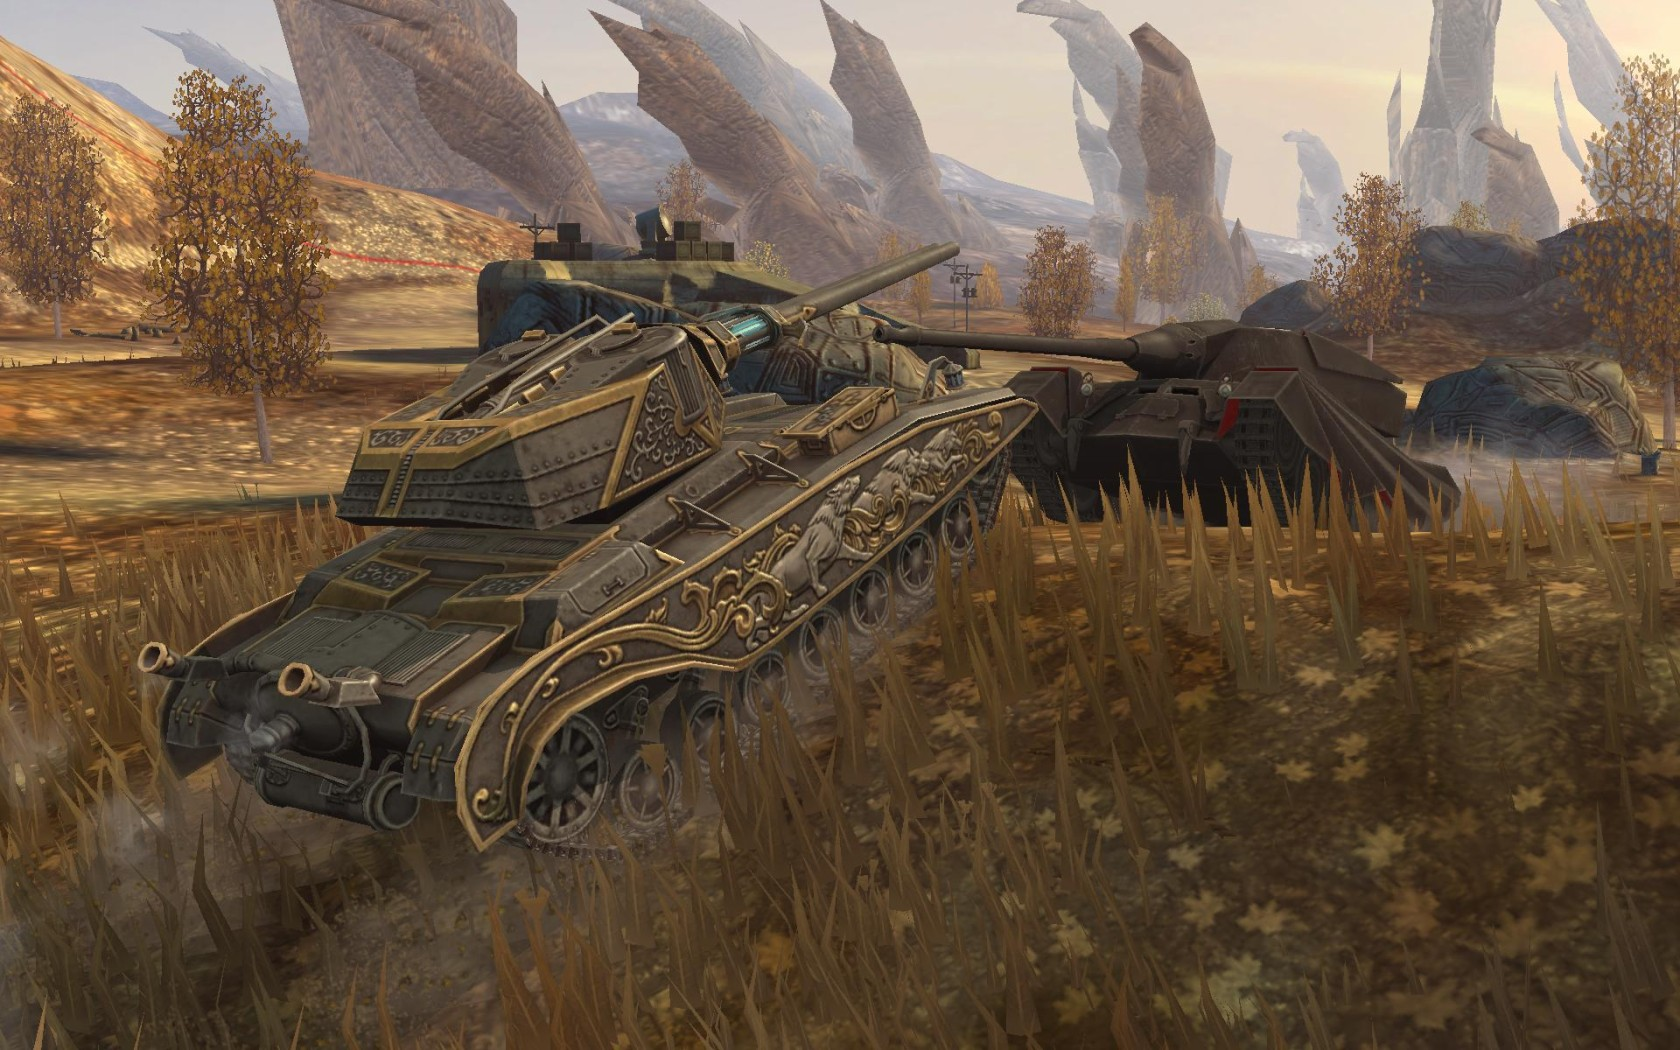 World of Tanks Blitz on Steam